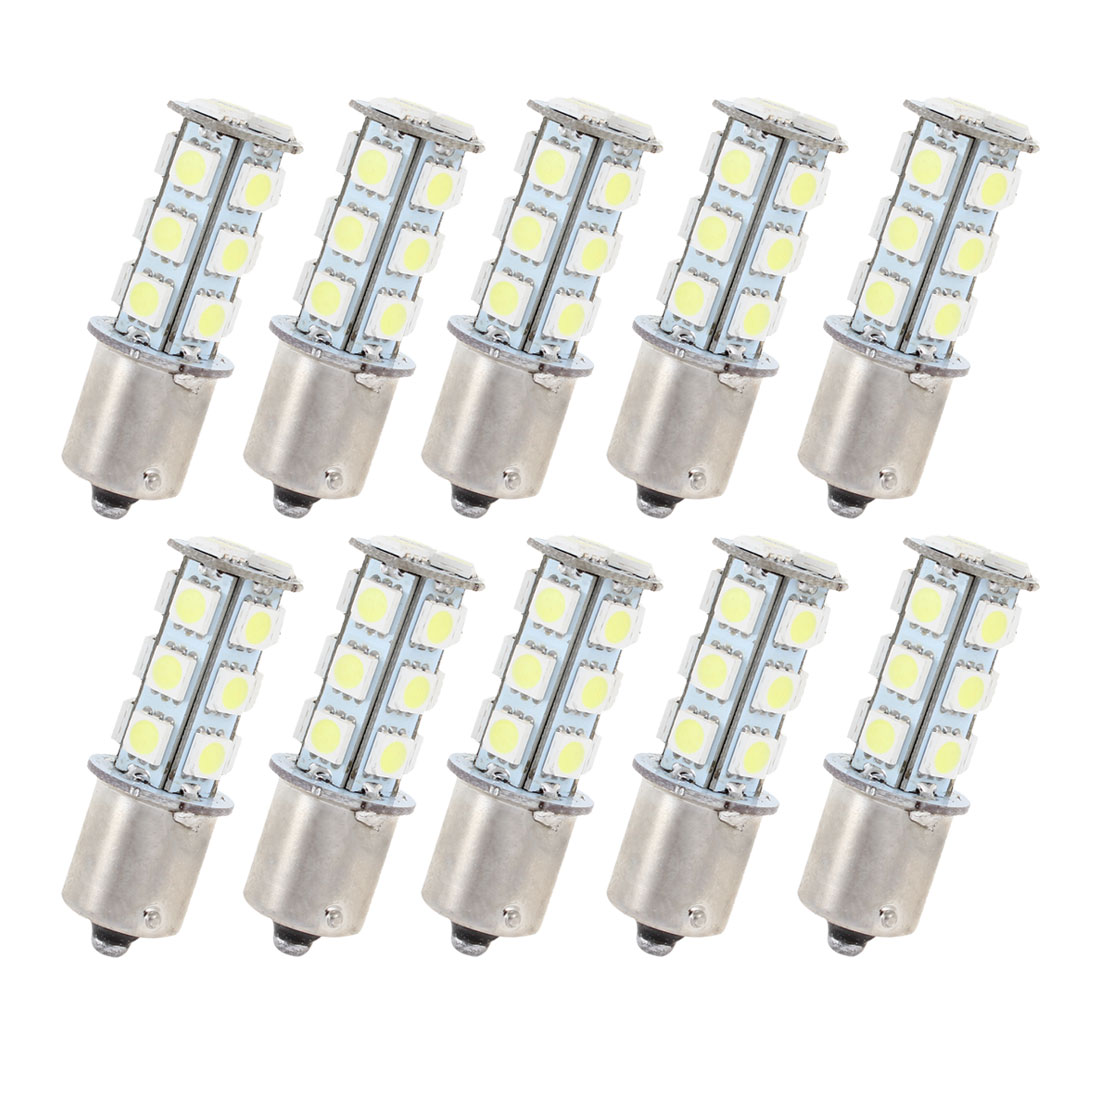 10 Pcs White 18 LED 1156 BA15S 5050 SMD Car Indicator Backup Tail Turn Light 1073 1093 1129